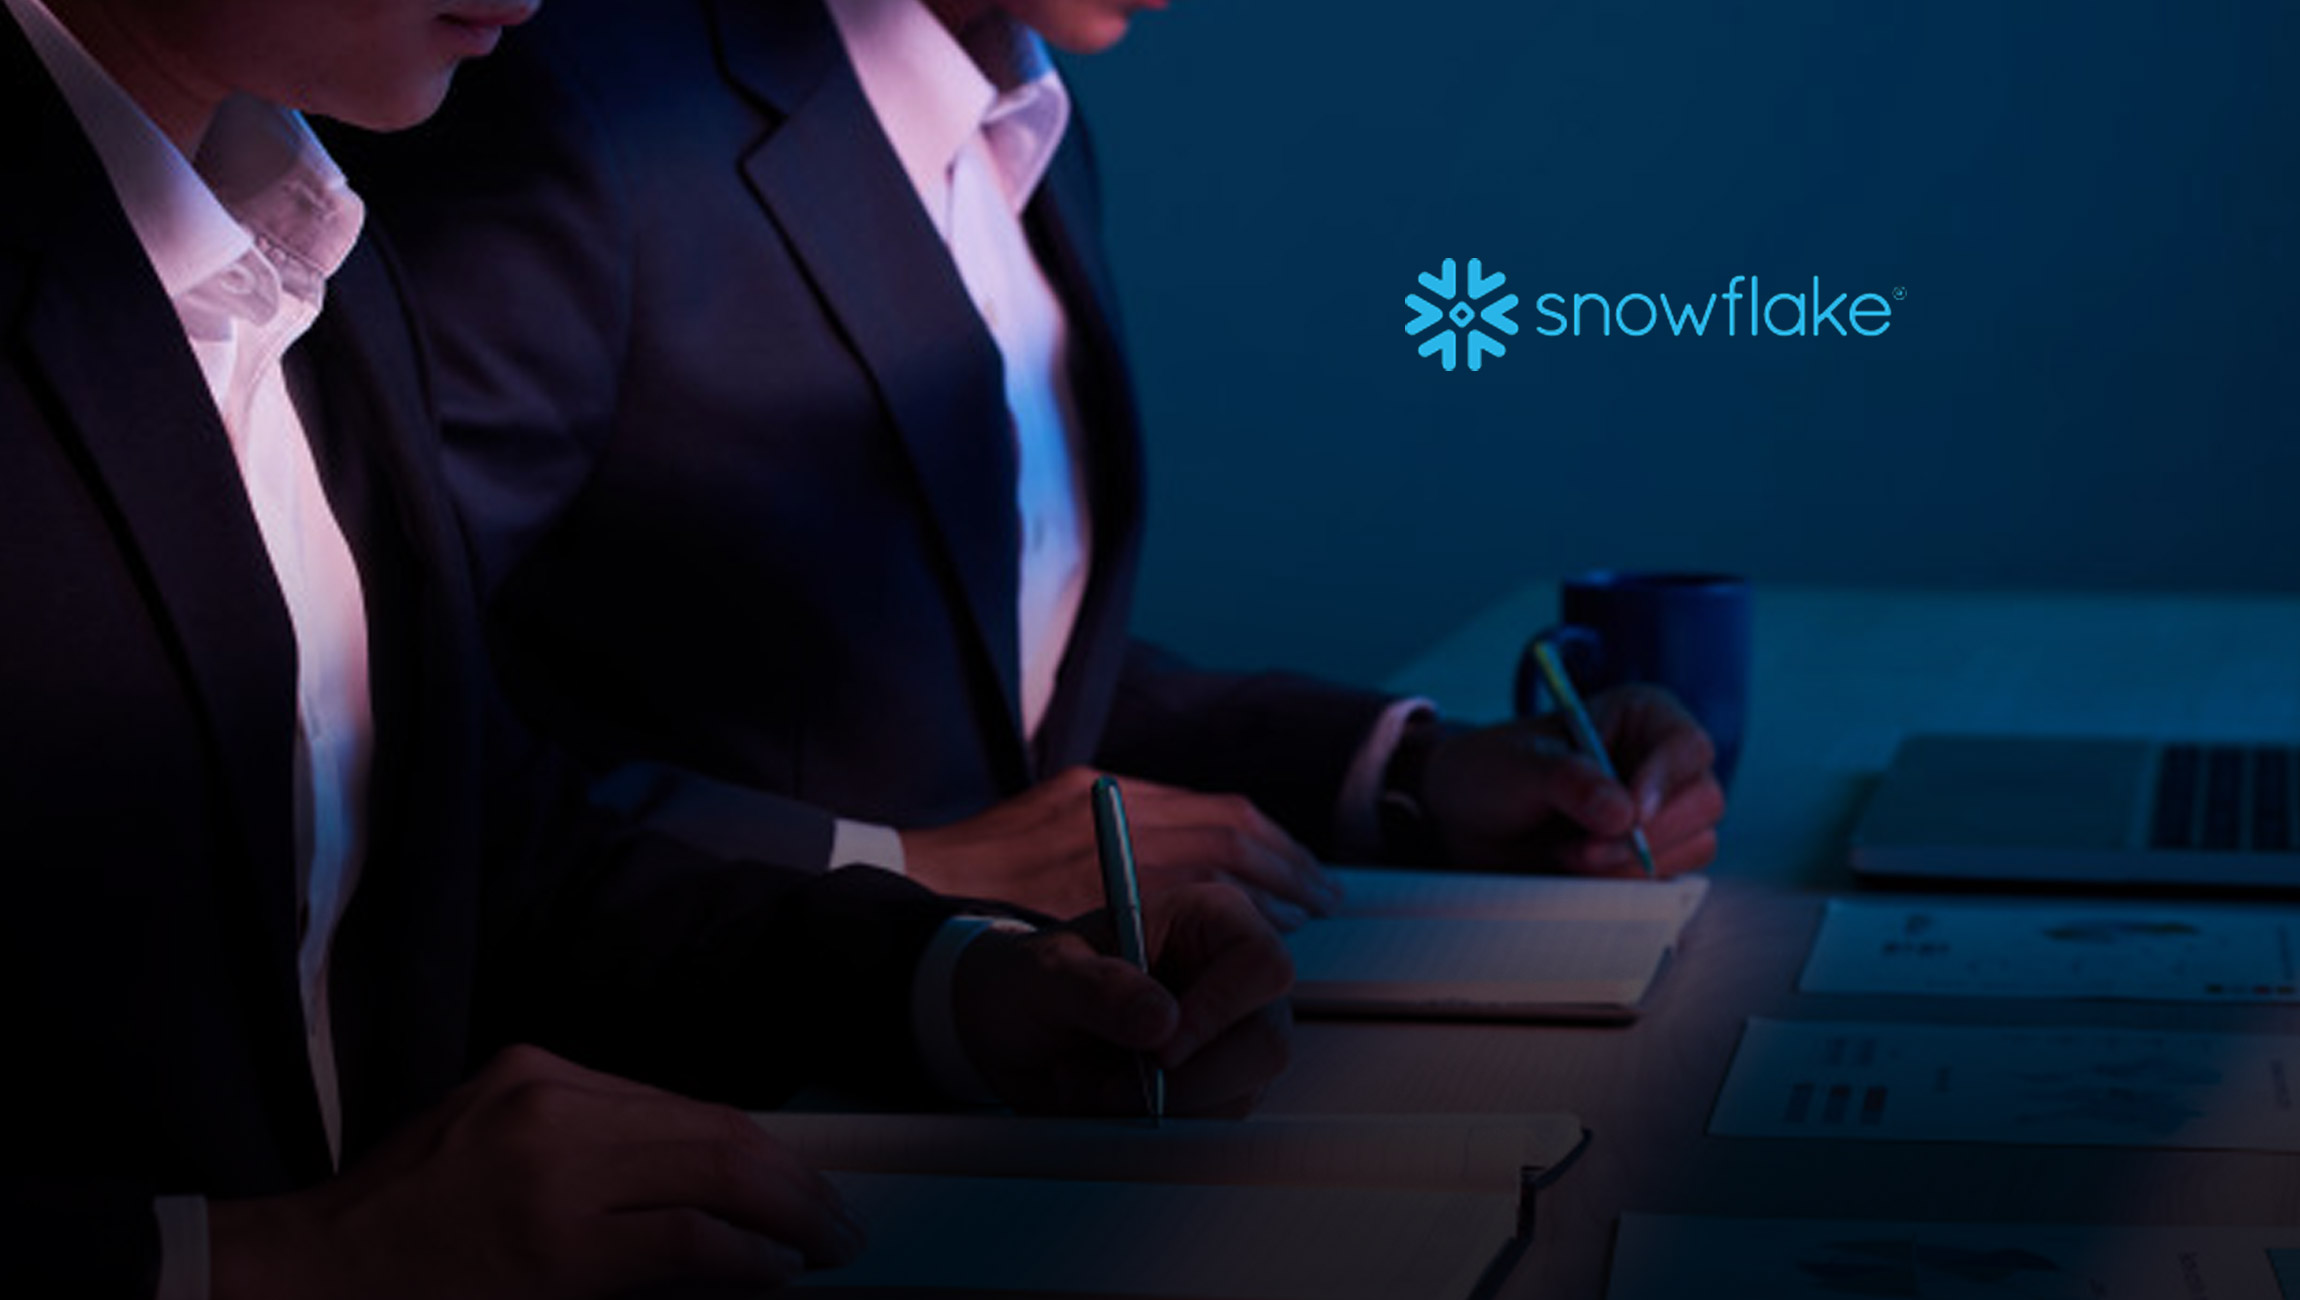 Snowflake-Data-Marketplace-Expands-Total-Providers-Over-300%_-Unlocking-More-Value-for-Thousands-of-Organizations